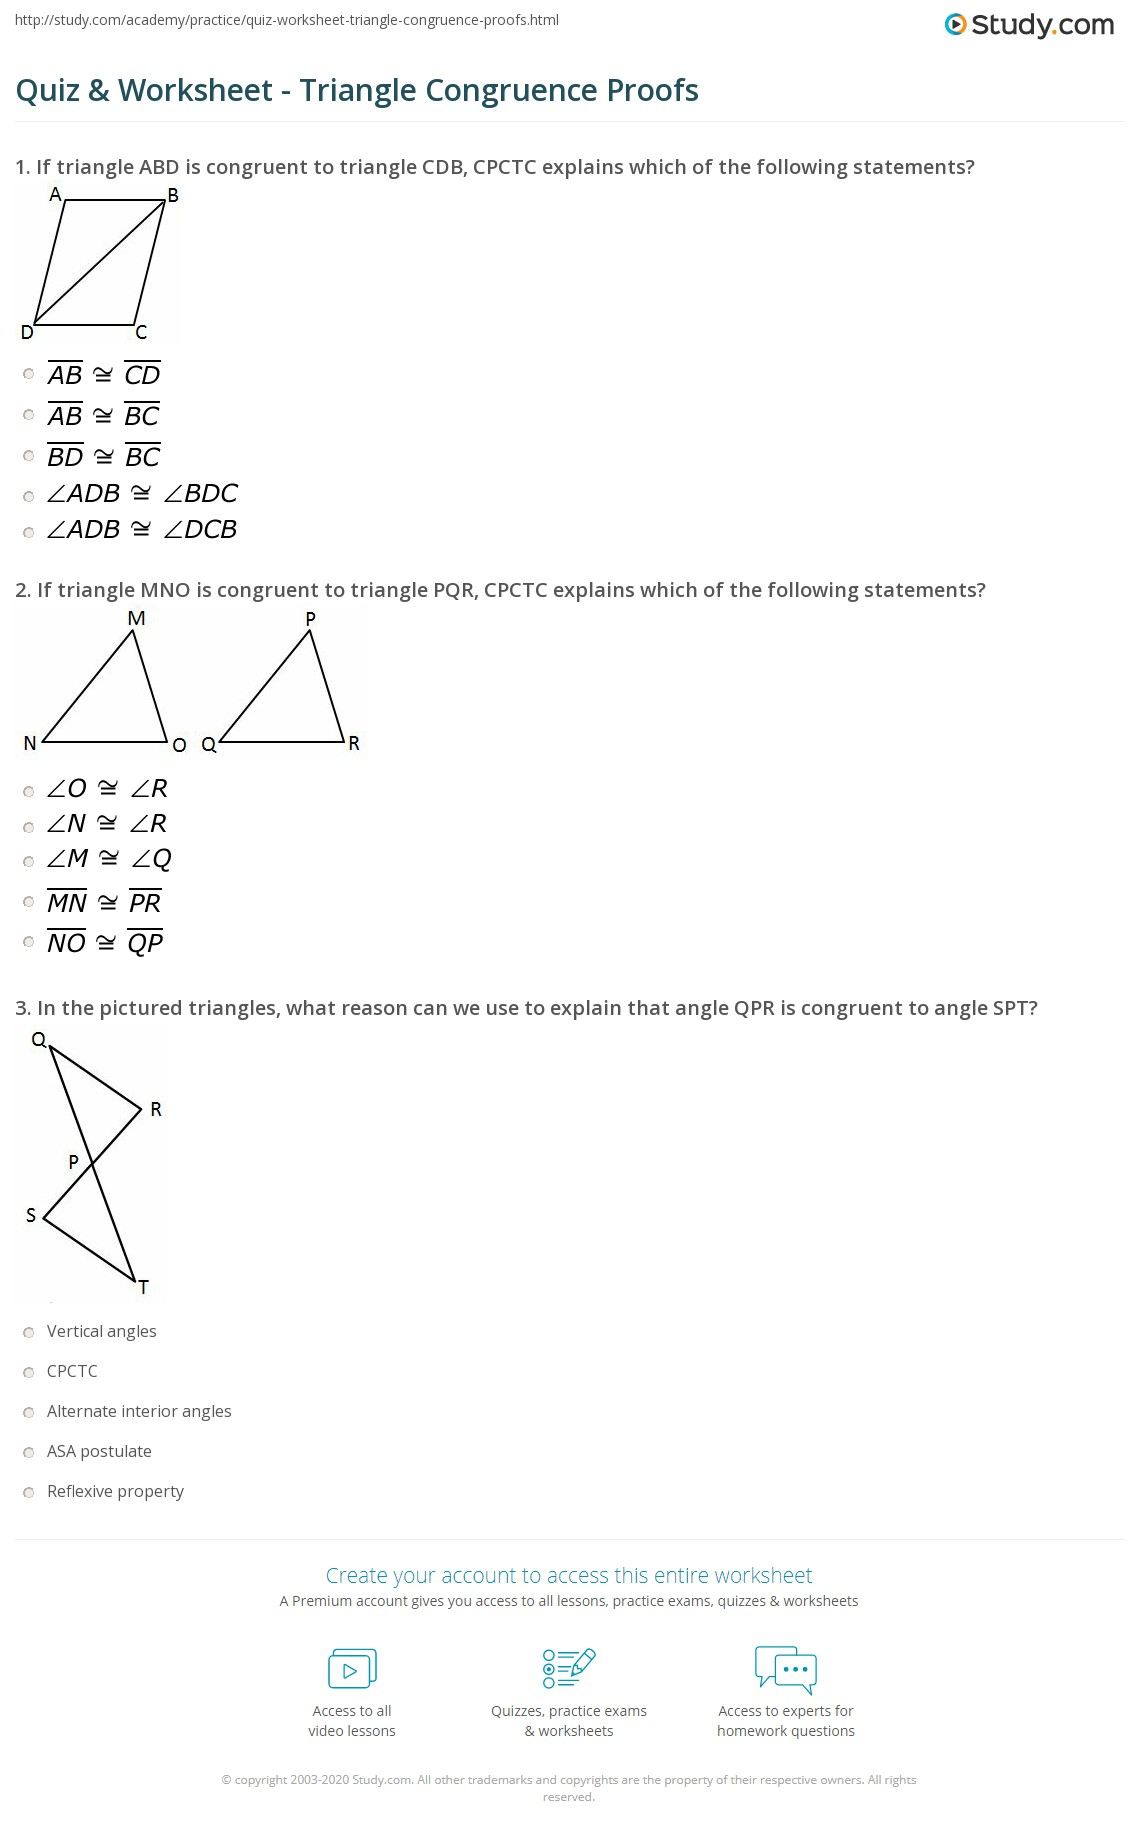 worksheet Congruent Triangle Proofs Worksheet quiz worksheet triangle congruence proofs study com print corresponding parts of congruent triangles worksheet